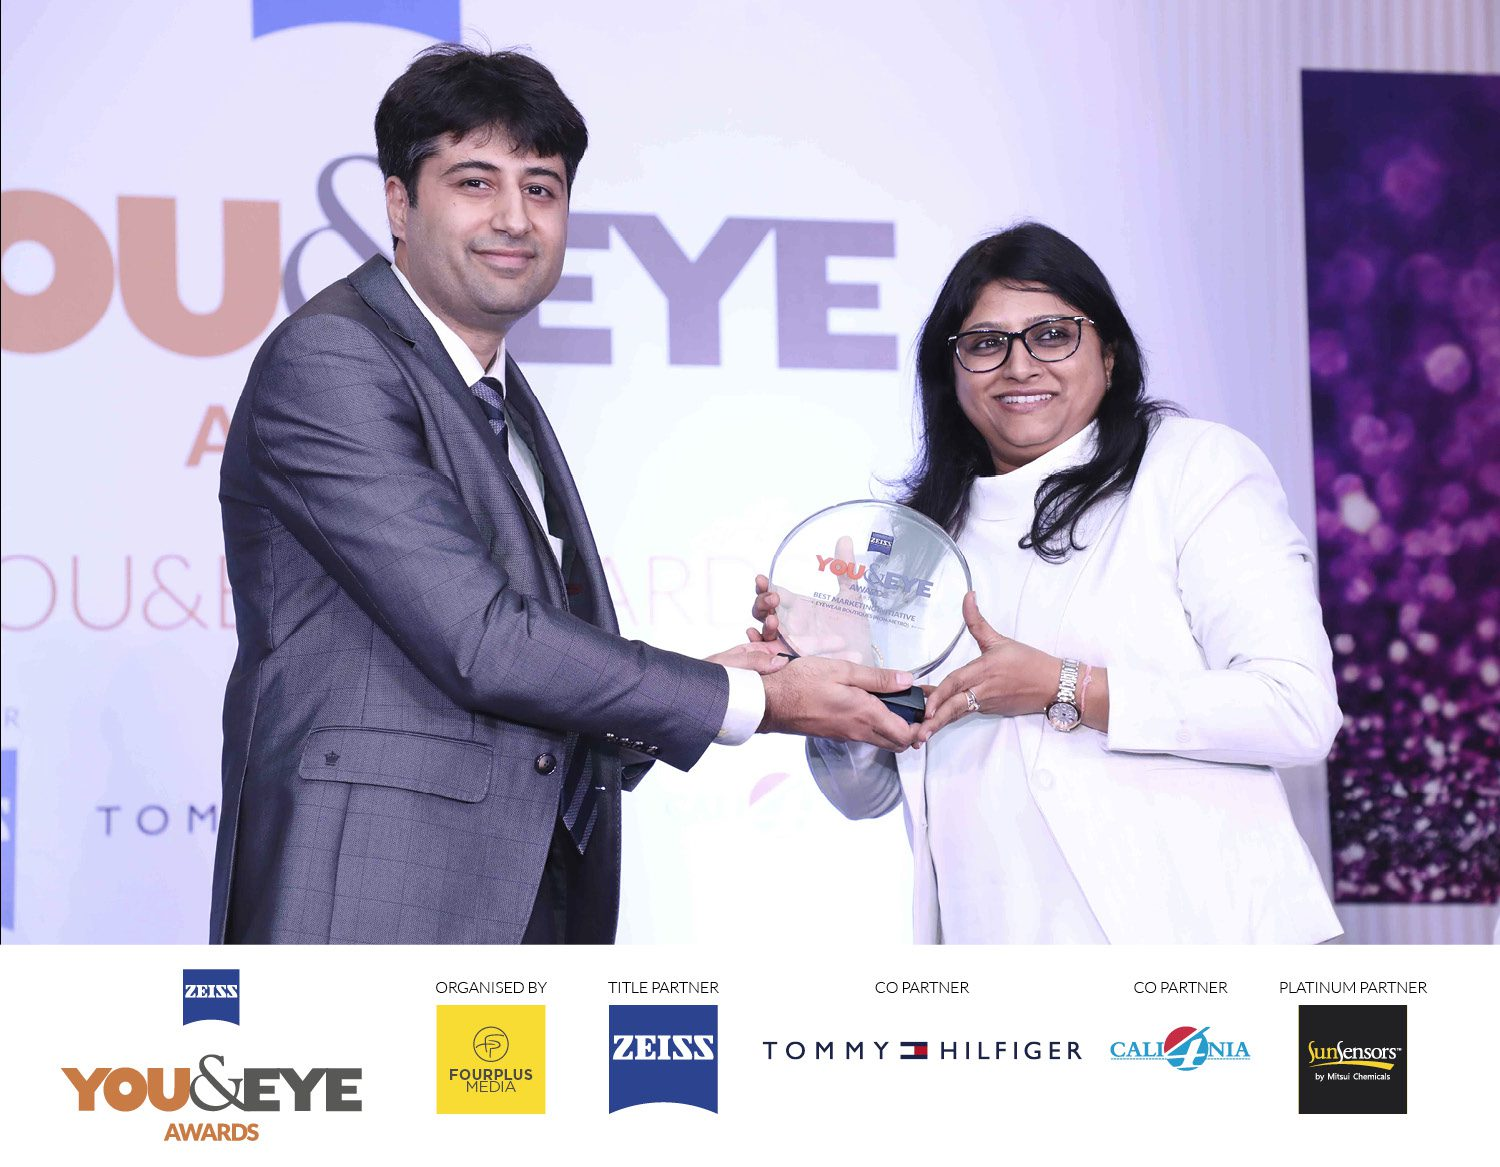 Pallavi A Chaudhary from was present to receive the awards from Rohan Paul of ZEISS.